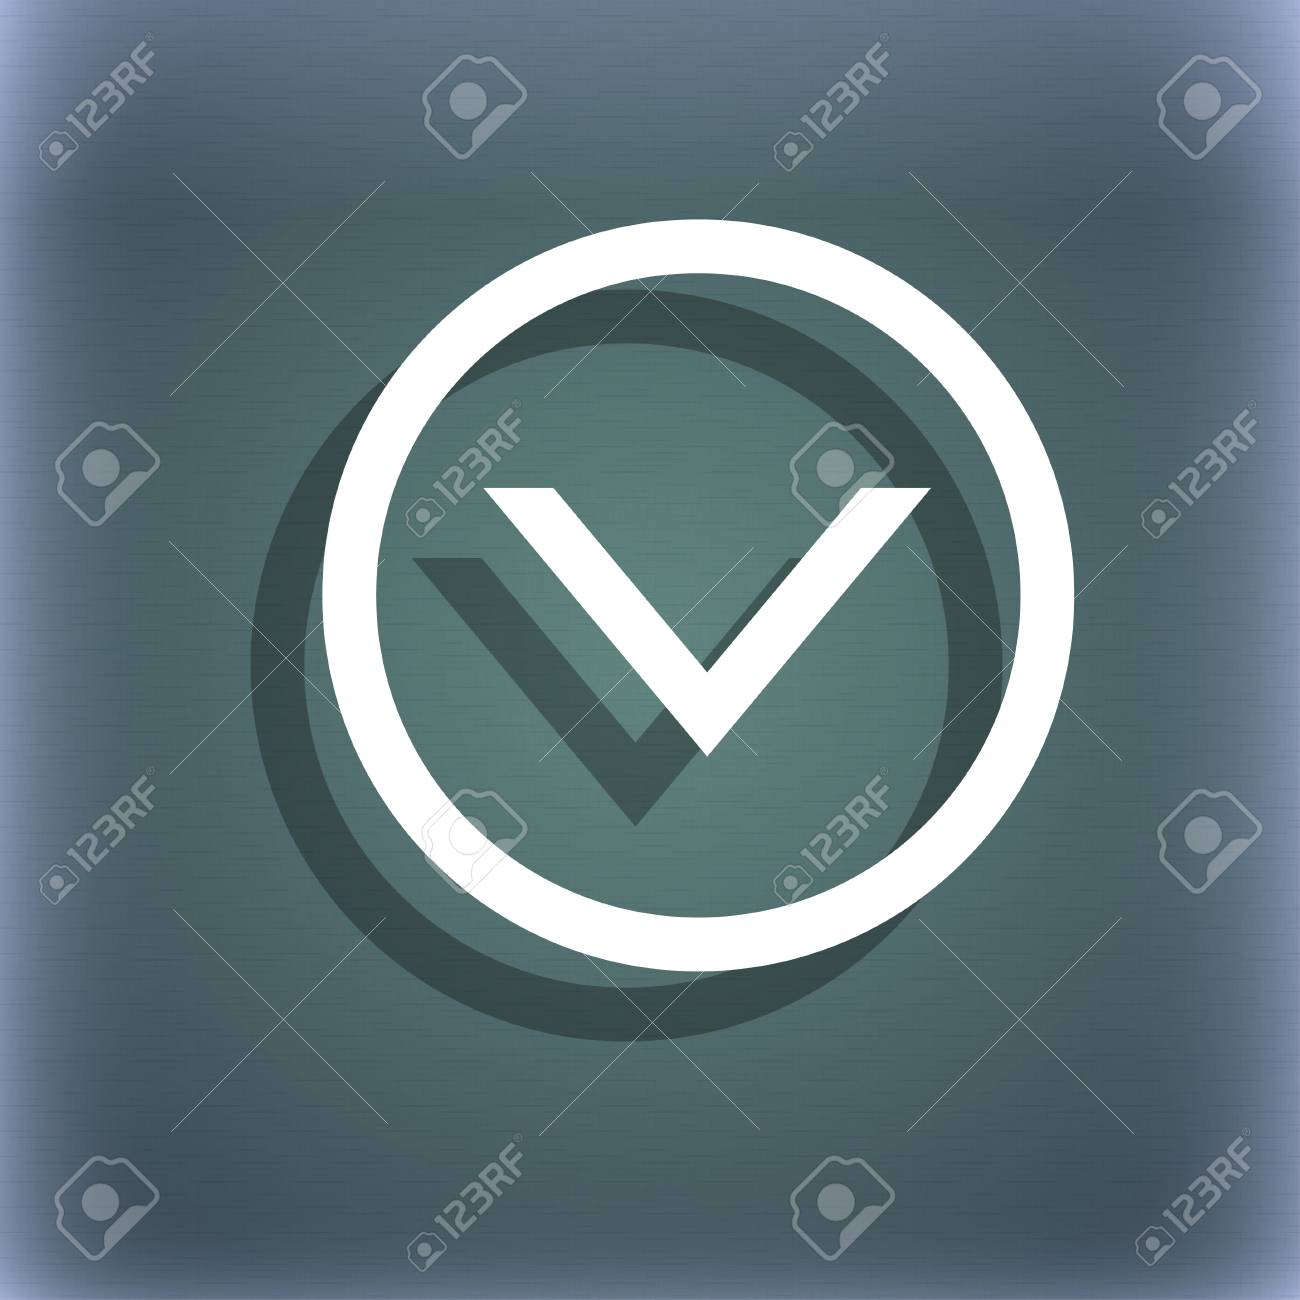 Arrow Down Download Load Backup Icon Symbol On The Blue Green